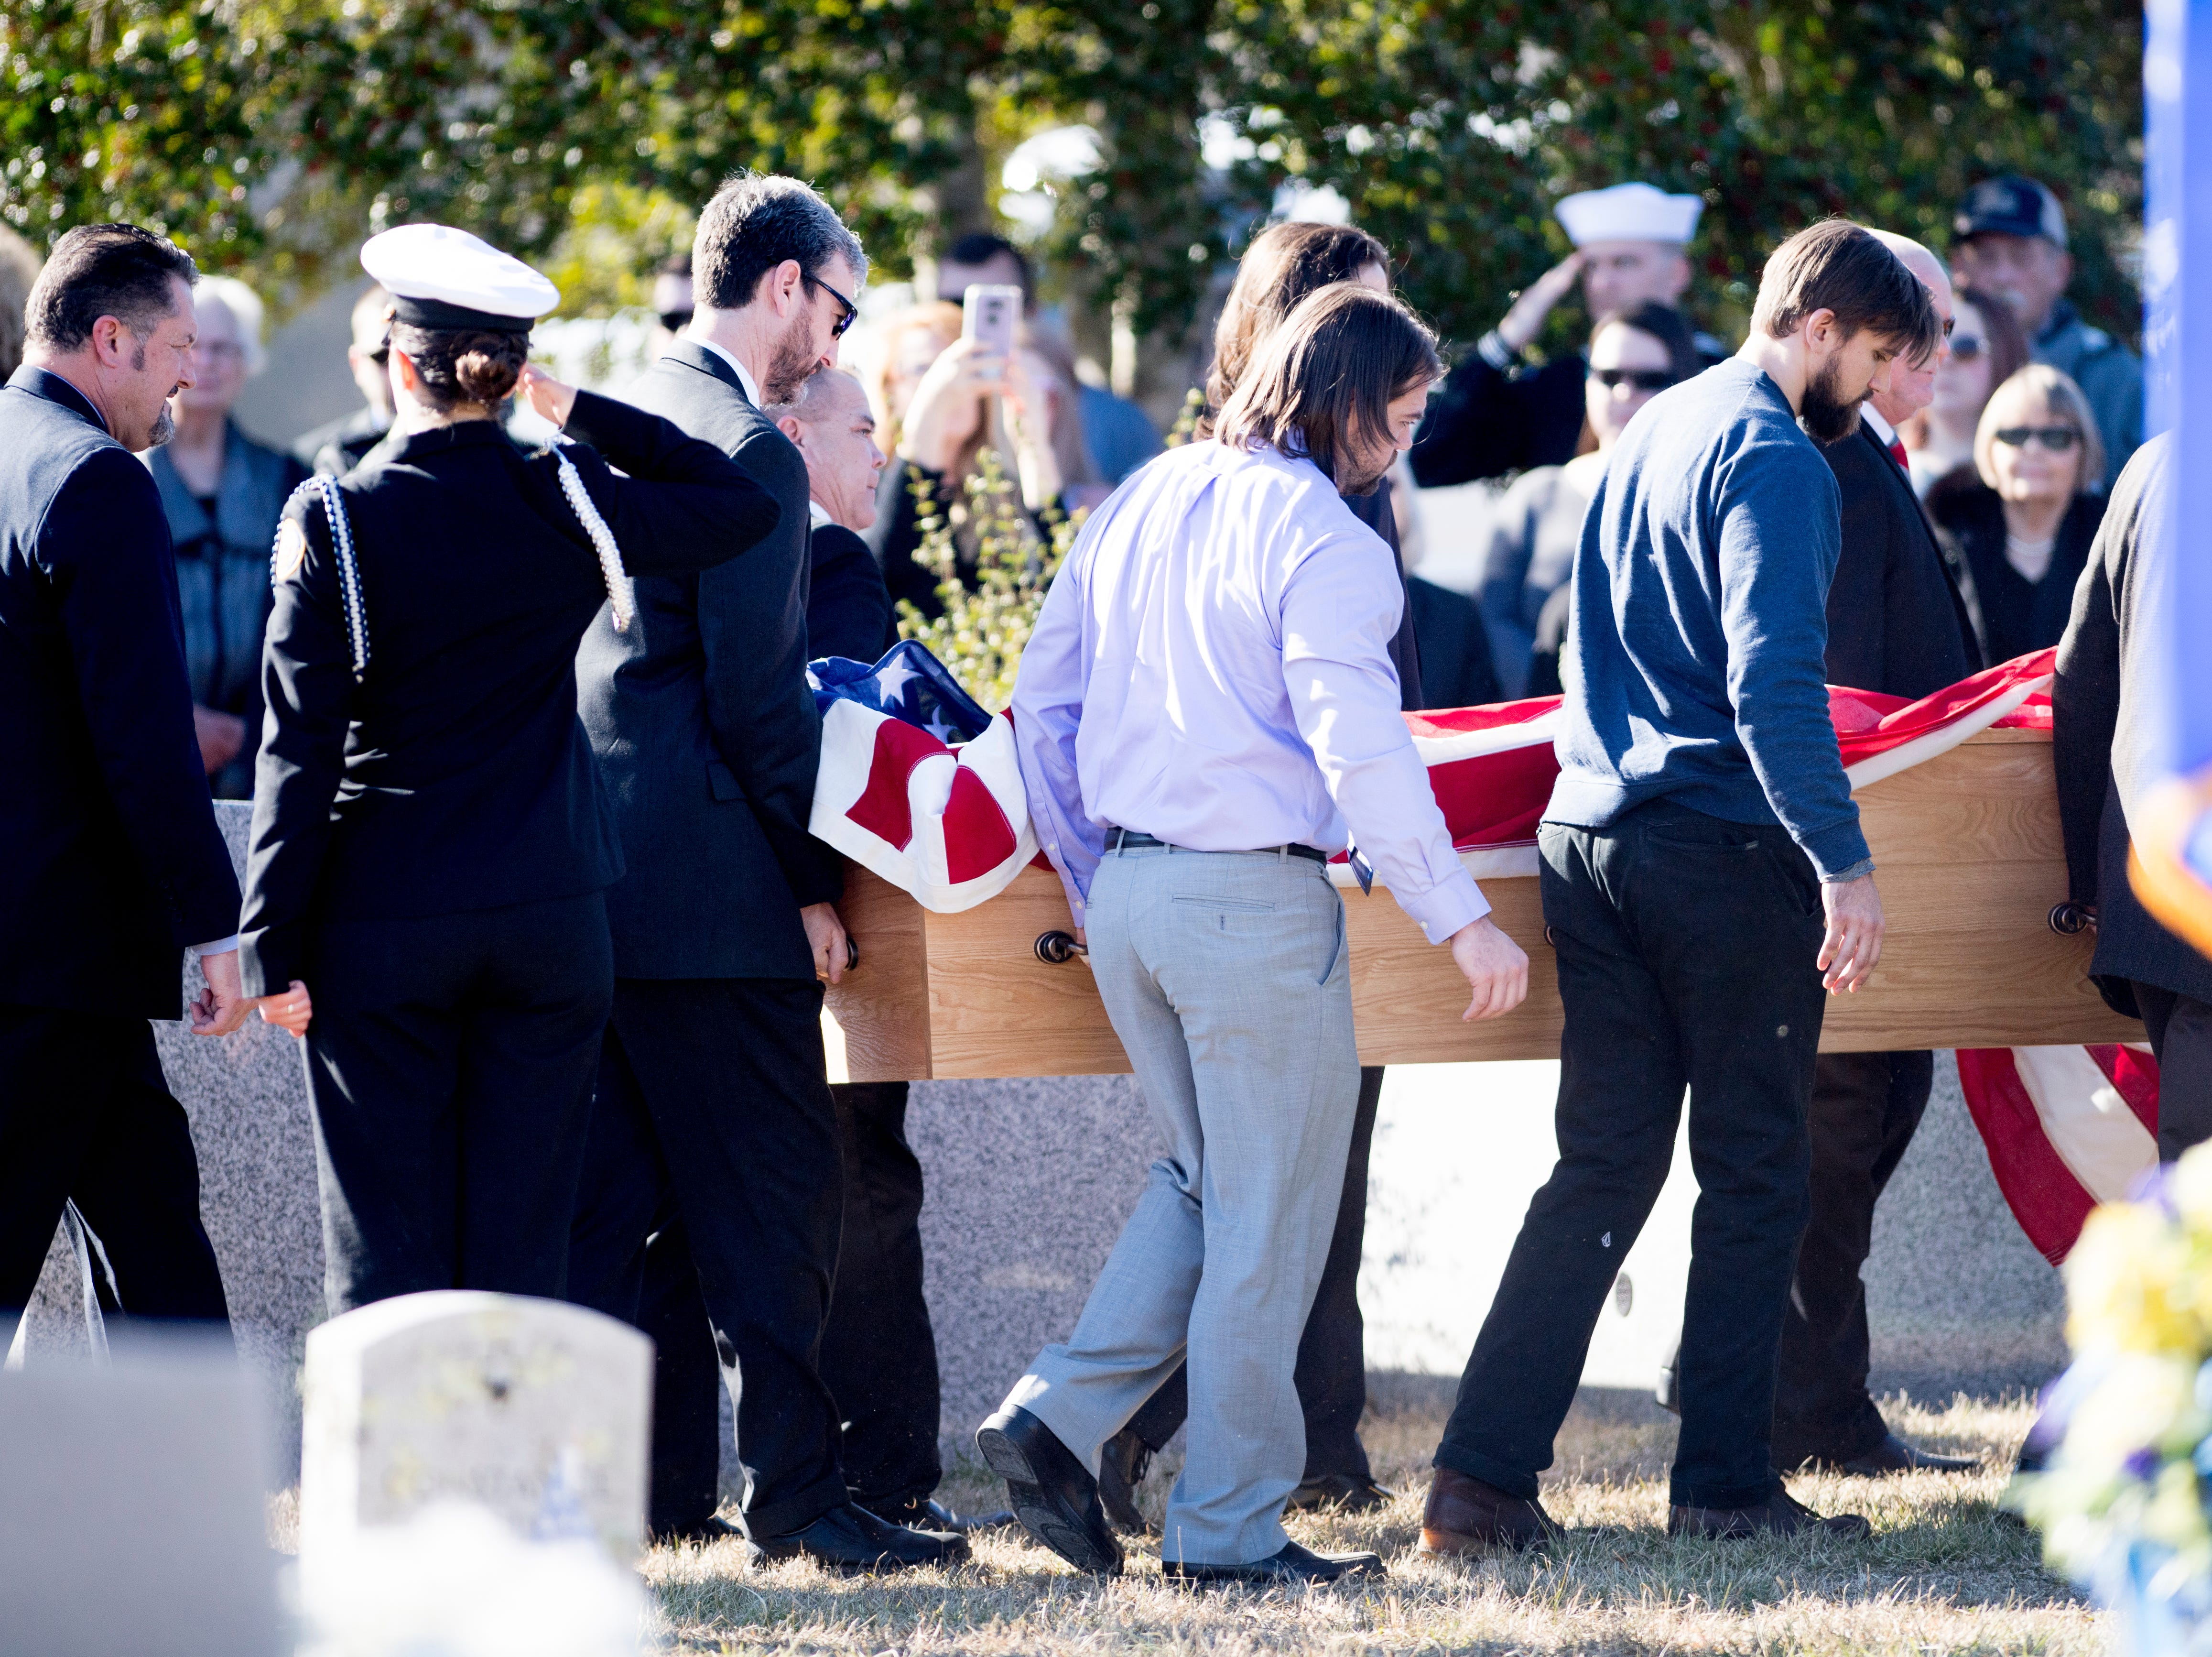 Pallbearers carry the casket of Rosemary Mariner, the US Navy's first female fighter pilot, from the hearse during a graveside service at New Loyston Cemetery in Maynardville, Tennessee on Saturday, February 2, 2019. Mariner died January 24th of cancer.